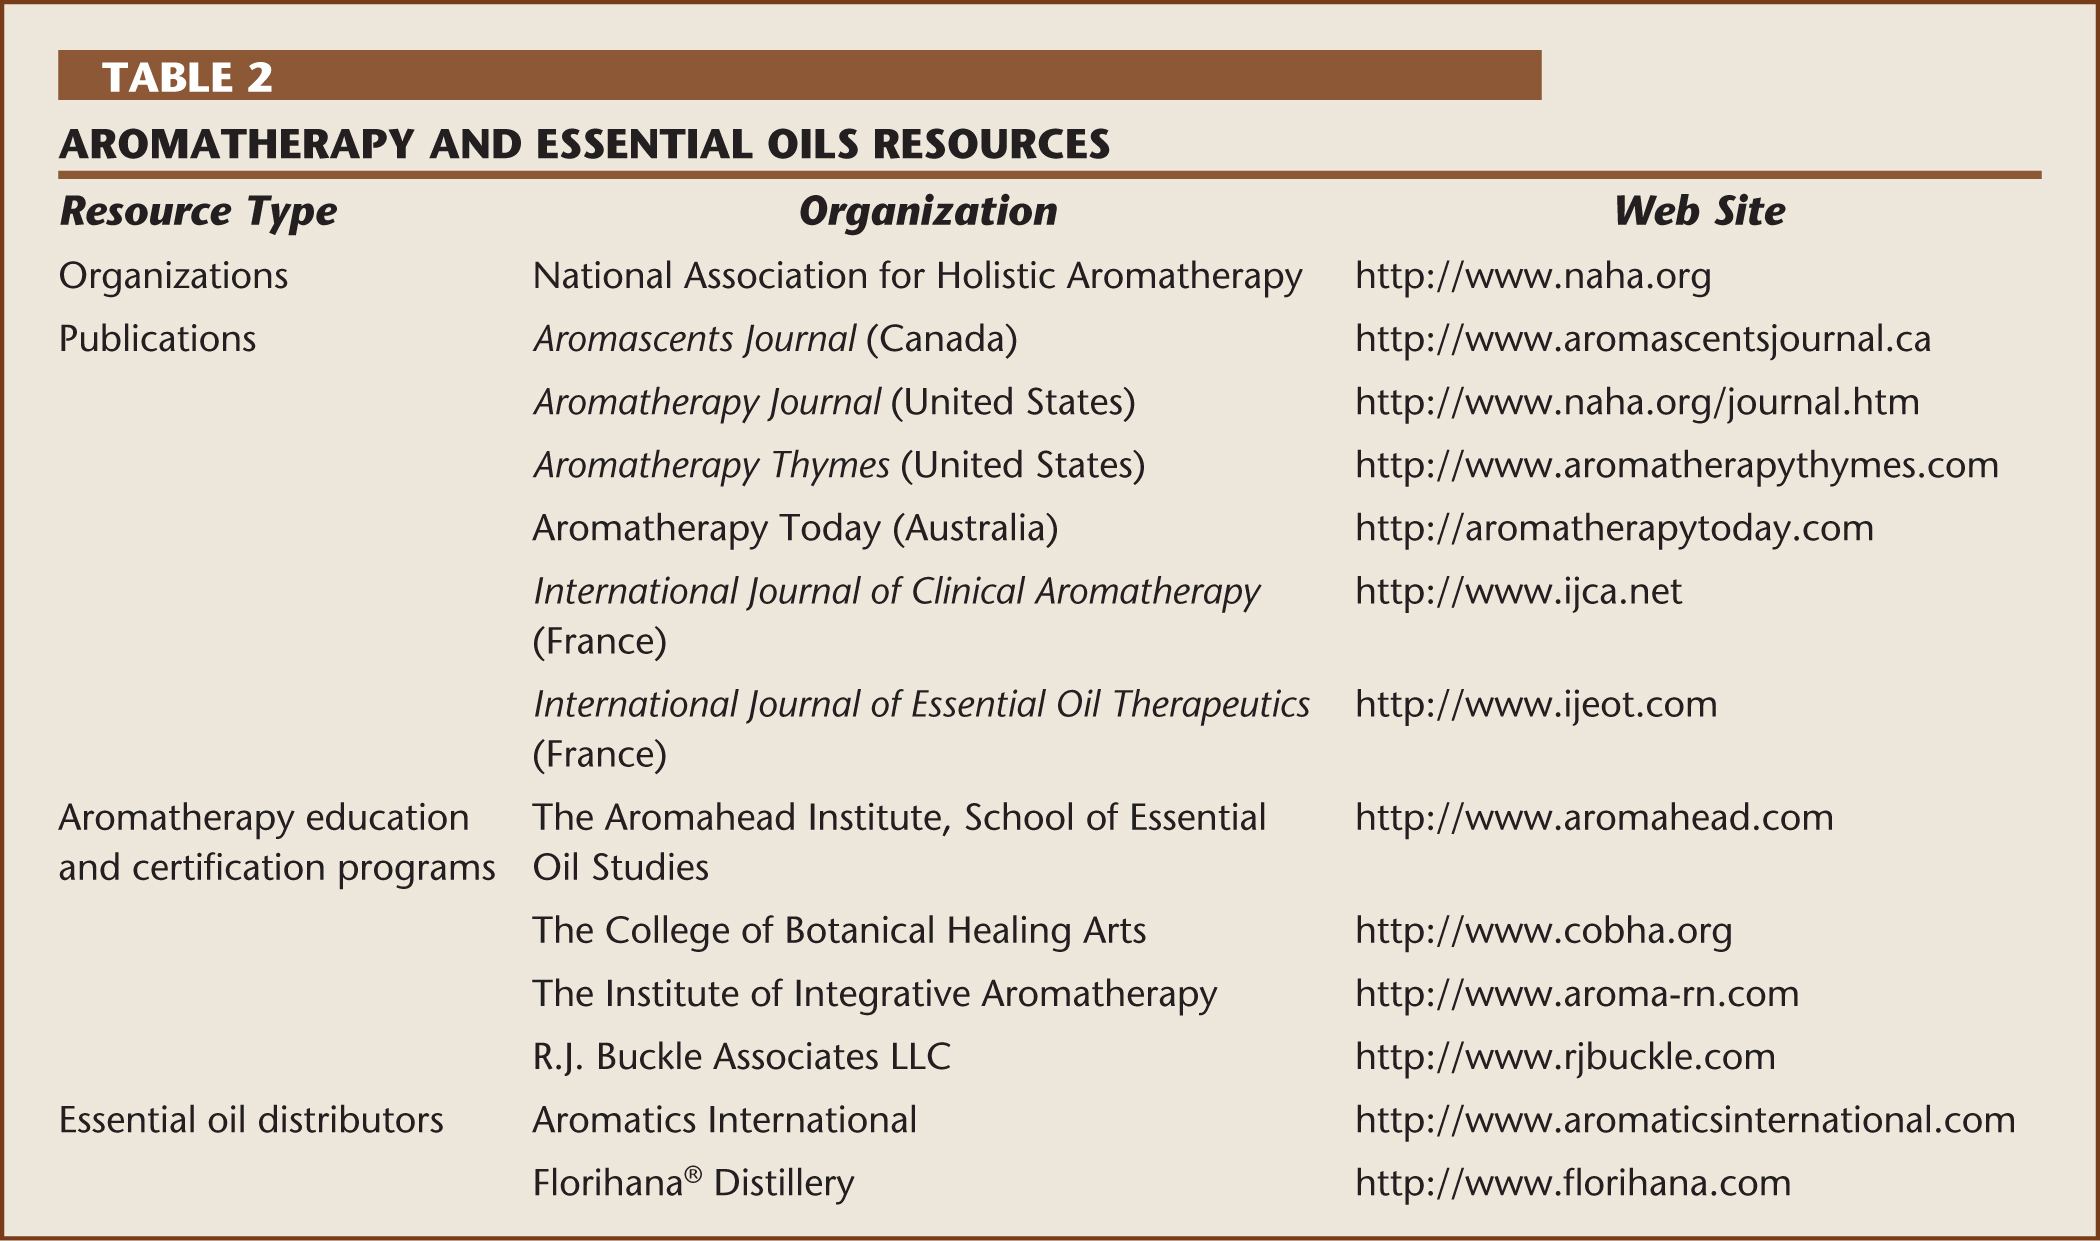 Aromatherapy and Essential Oils Resources